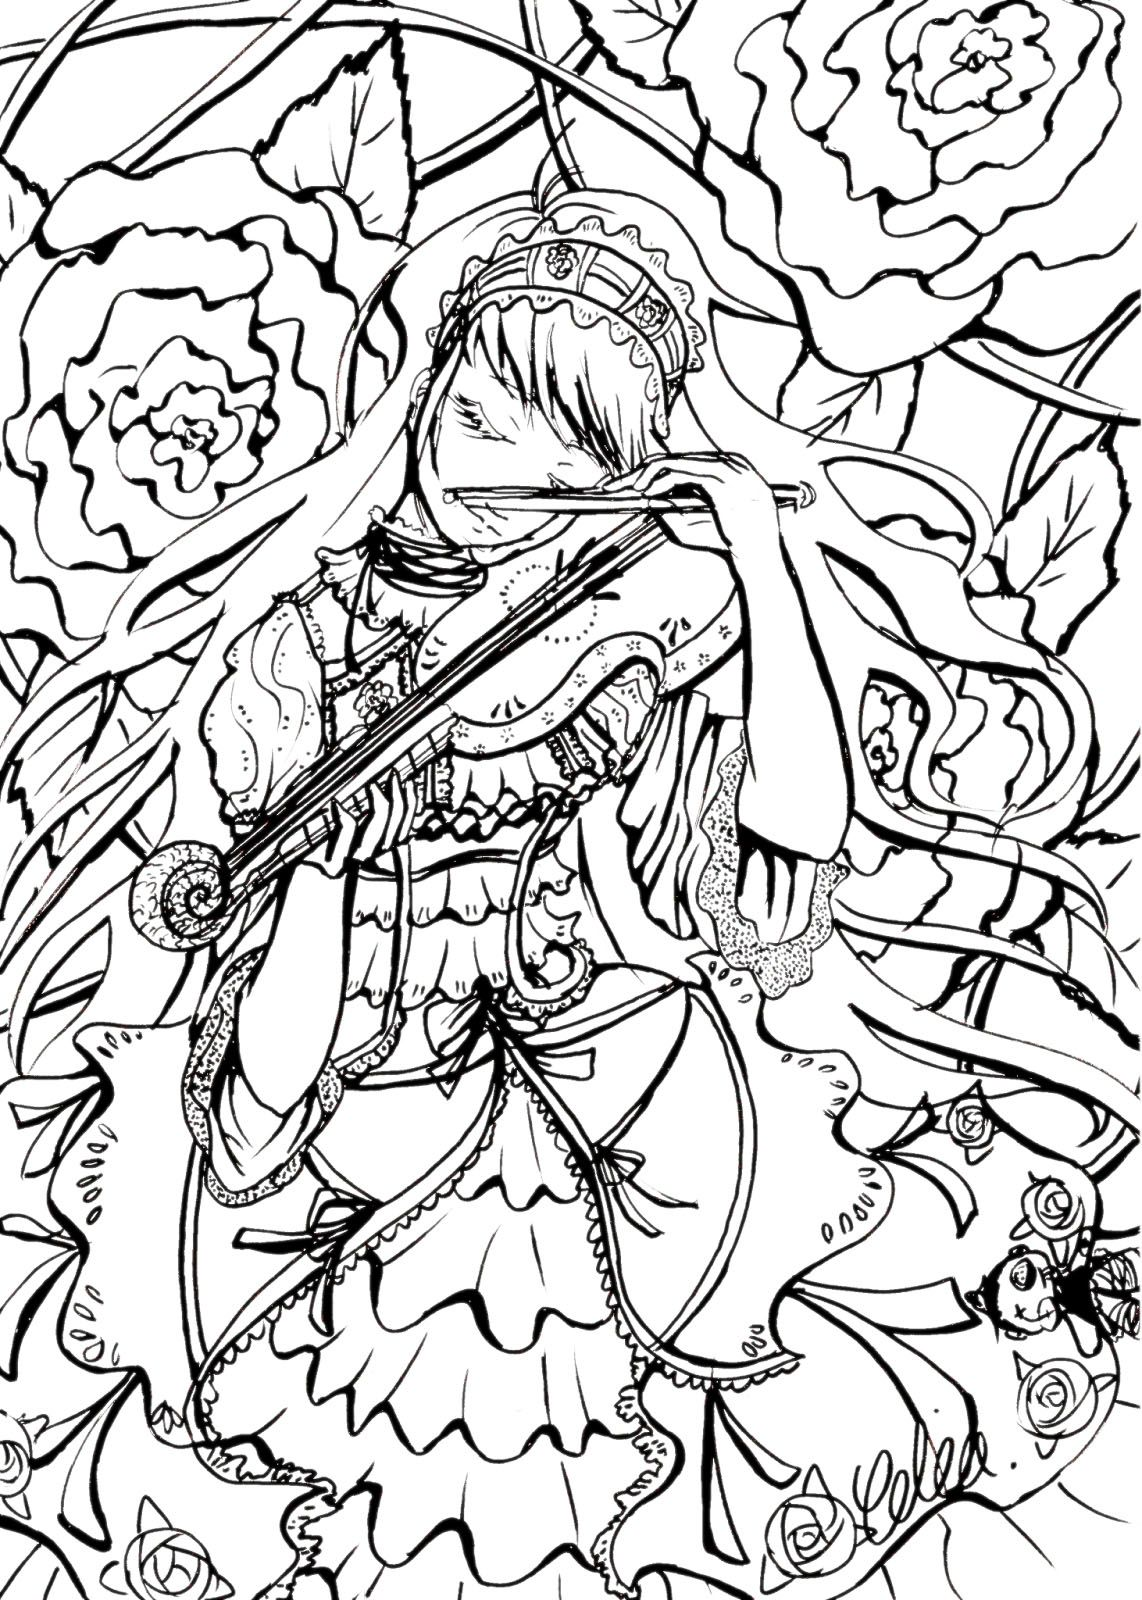 to print this free coloring page coloring complex princess